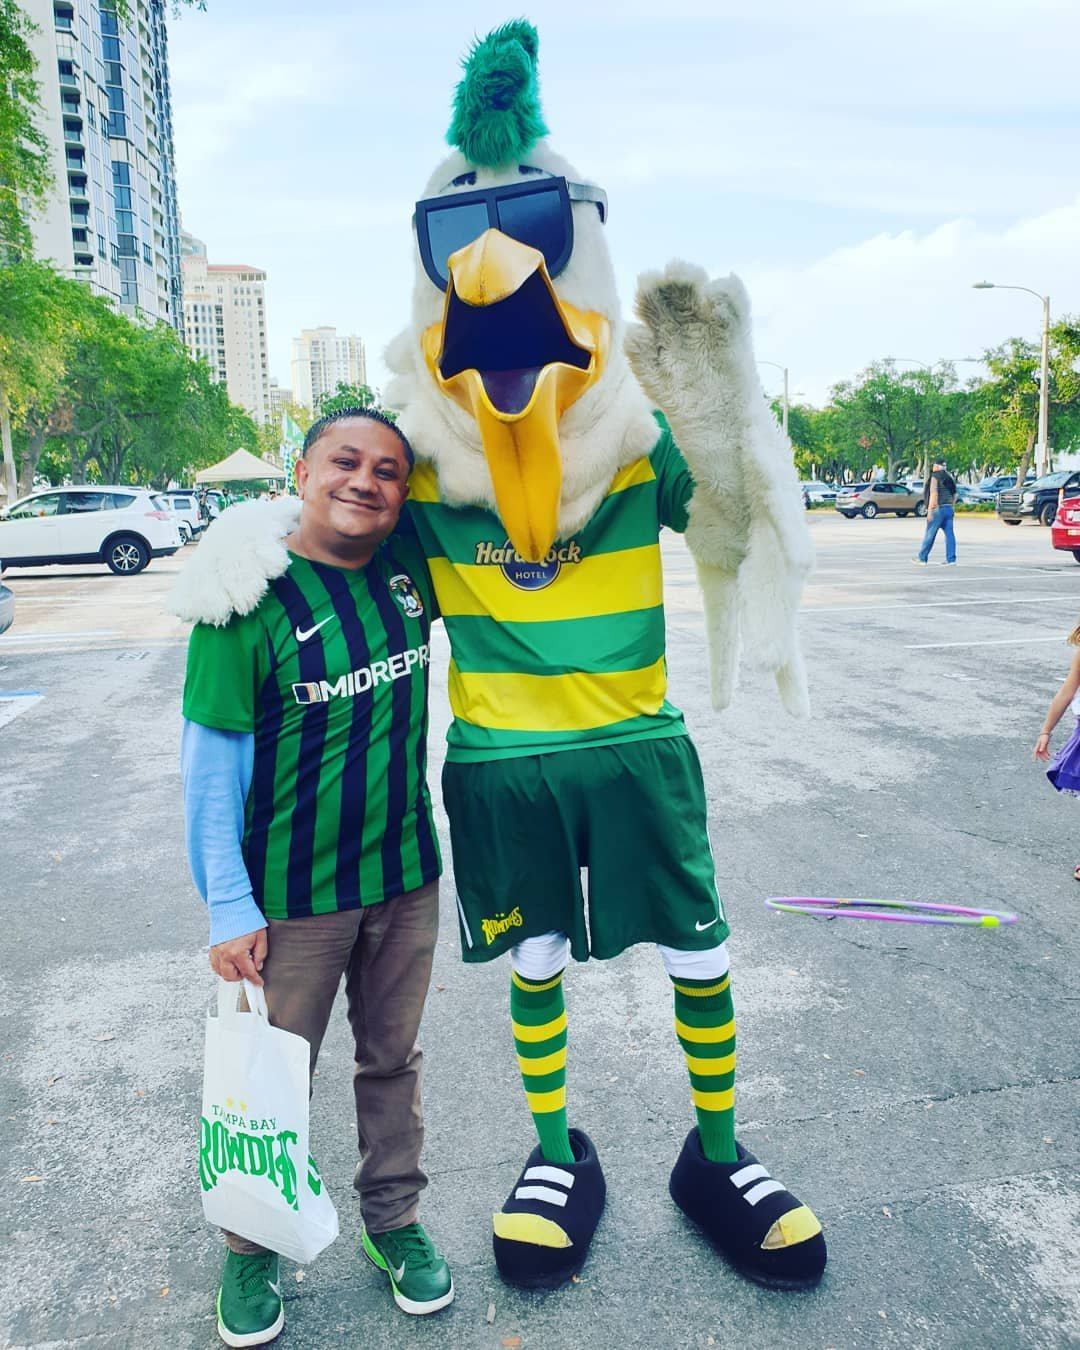 I'm with Tampa Bay Rowdies FC's very own mascot and he's flown in from......... St Petersburg. It's Pete The Pelican! 🌞⚽️🏐🥅 Here at Al Lang Stadium in St Petersburg, Florida, United States Of America.  tampabayrowdies #RowdiesPete #PeteThePelican  #TampaBayRowdies #RowdiesSoccer #USLchampionship #USL #Football #Soccer #RalphsMob #COYR #TBR #AlLangStadium #TampaBay #Rowdies #TogetherRowdies #HardRockTampa #StPetersburg #StPetersburgFlorida #SunshineCity #Florida #StPete #VisitStPete #FloridasSunshineCity #StPeteFL #AlwaysInSeason #SunShinesHere